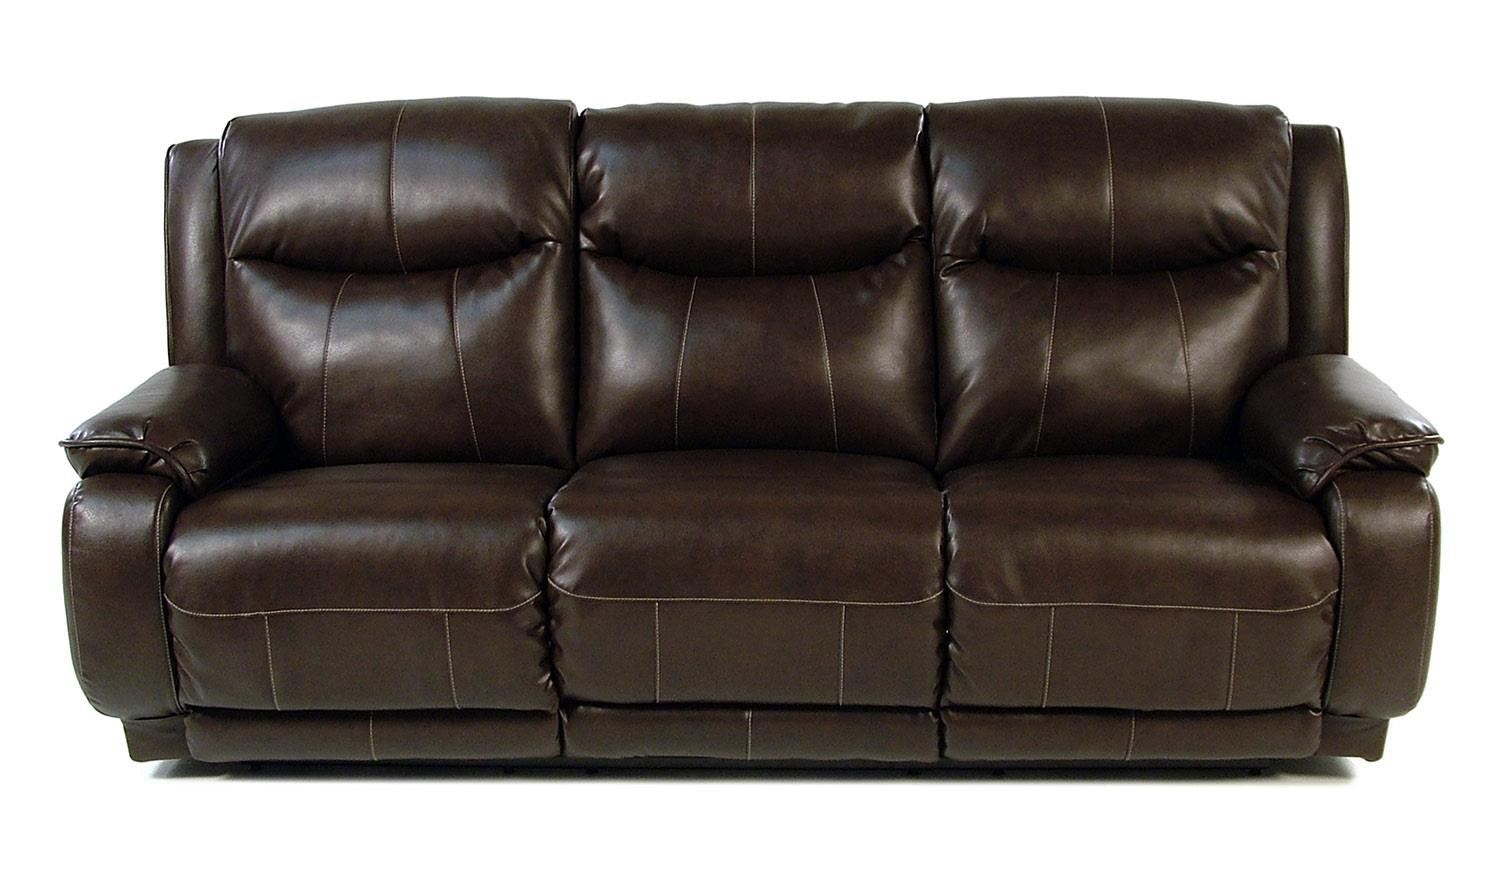 Design to Recline Power-Max Power Reclining Sofa w/ Power Headrest - Item Number: 875-61P